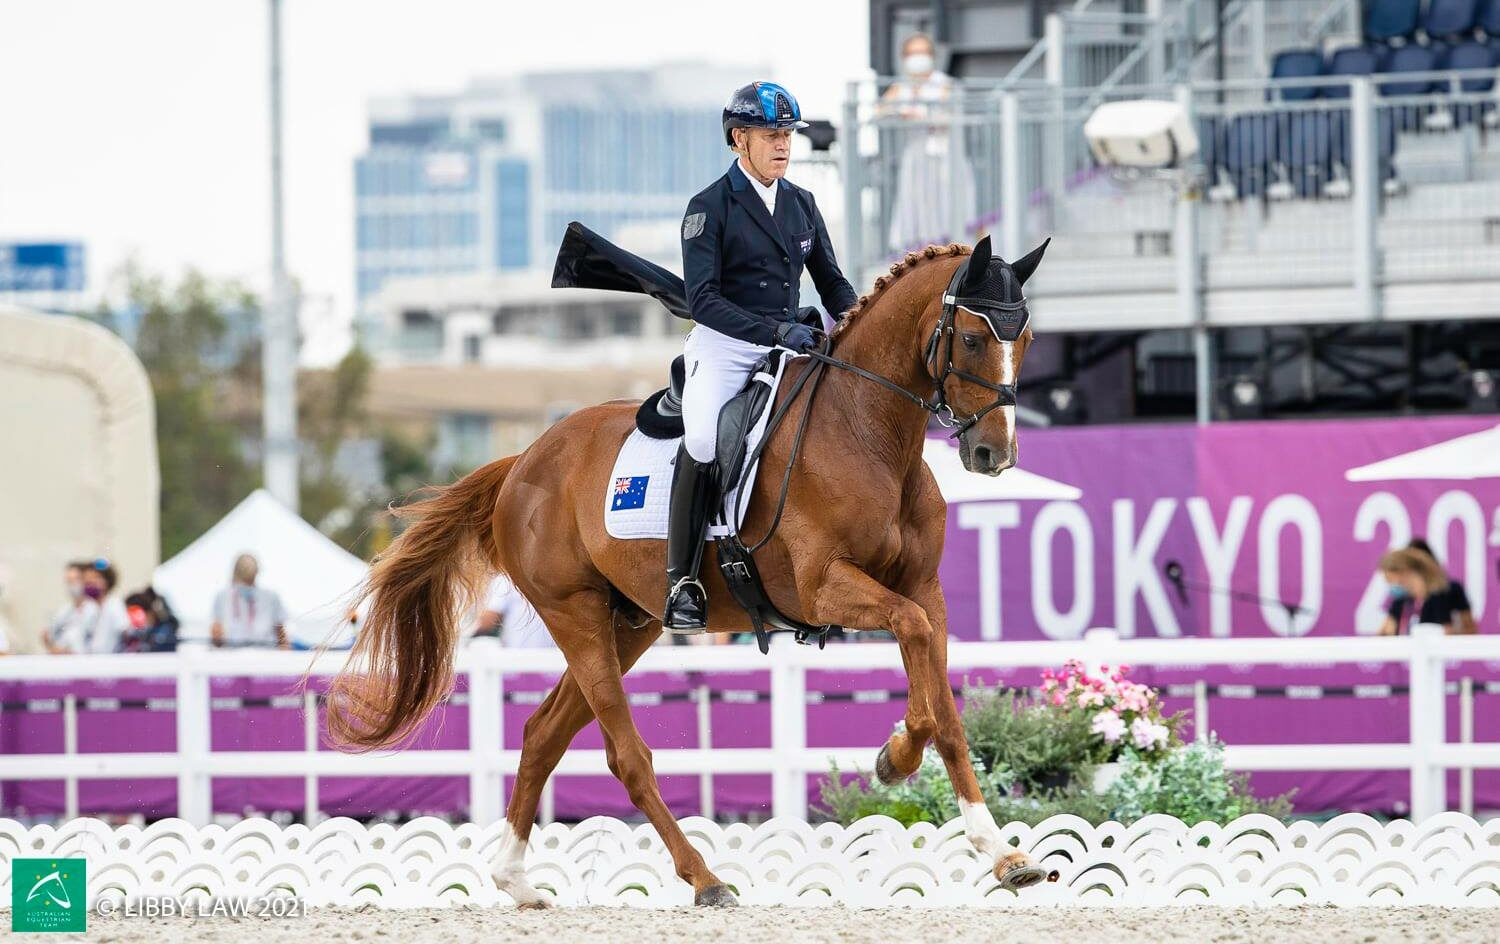 Andrew Hoy competing at the Tokyo 2020 Olympics - image credits: Australian Equestrian Team/Libby Law